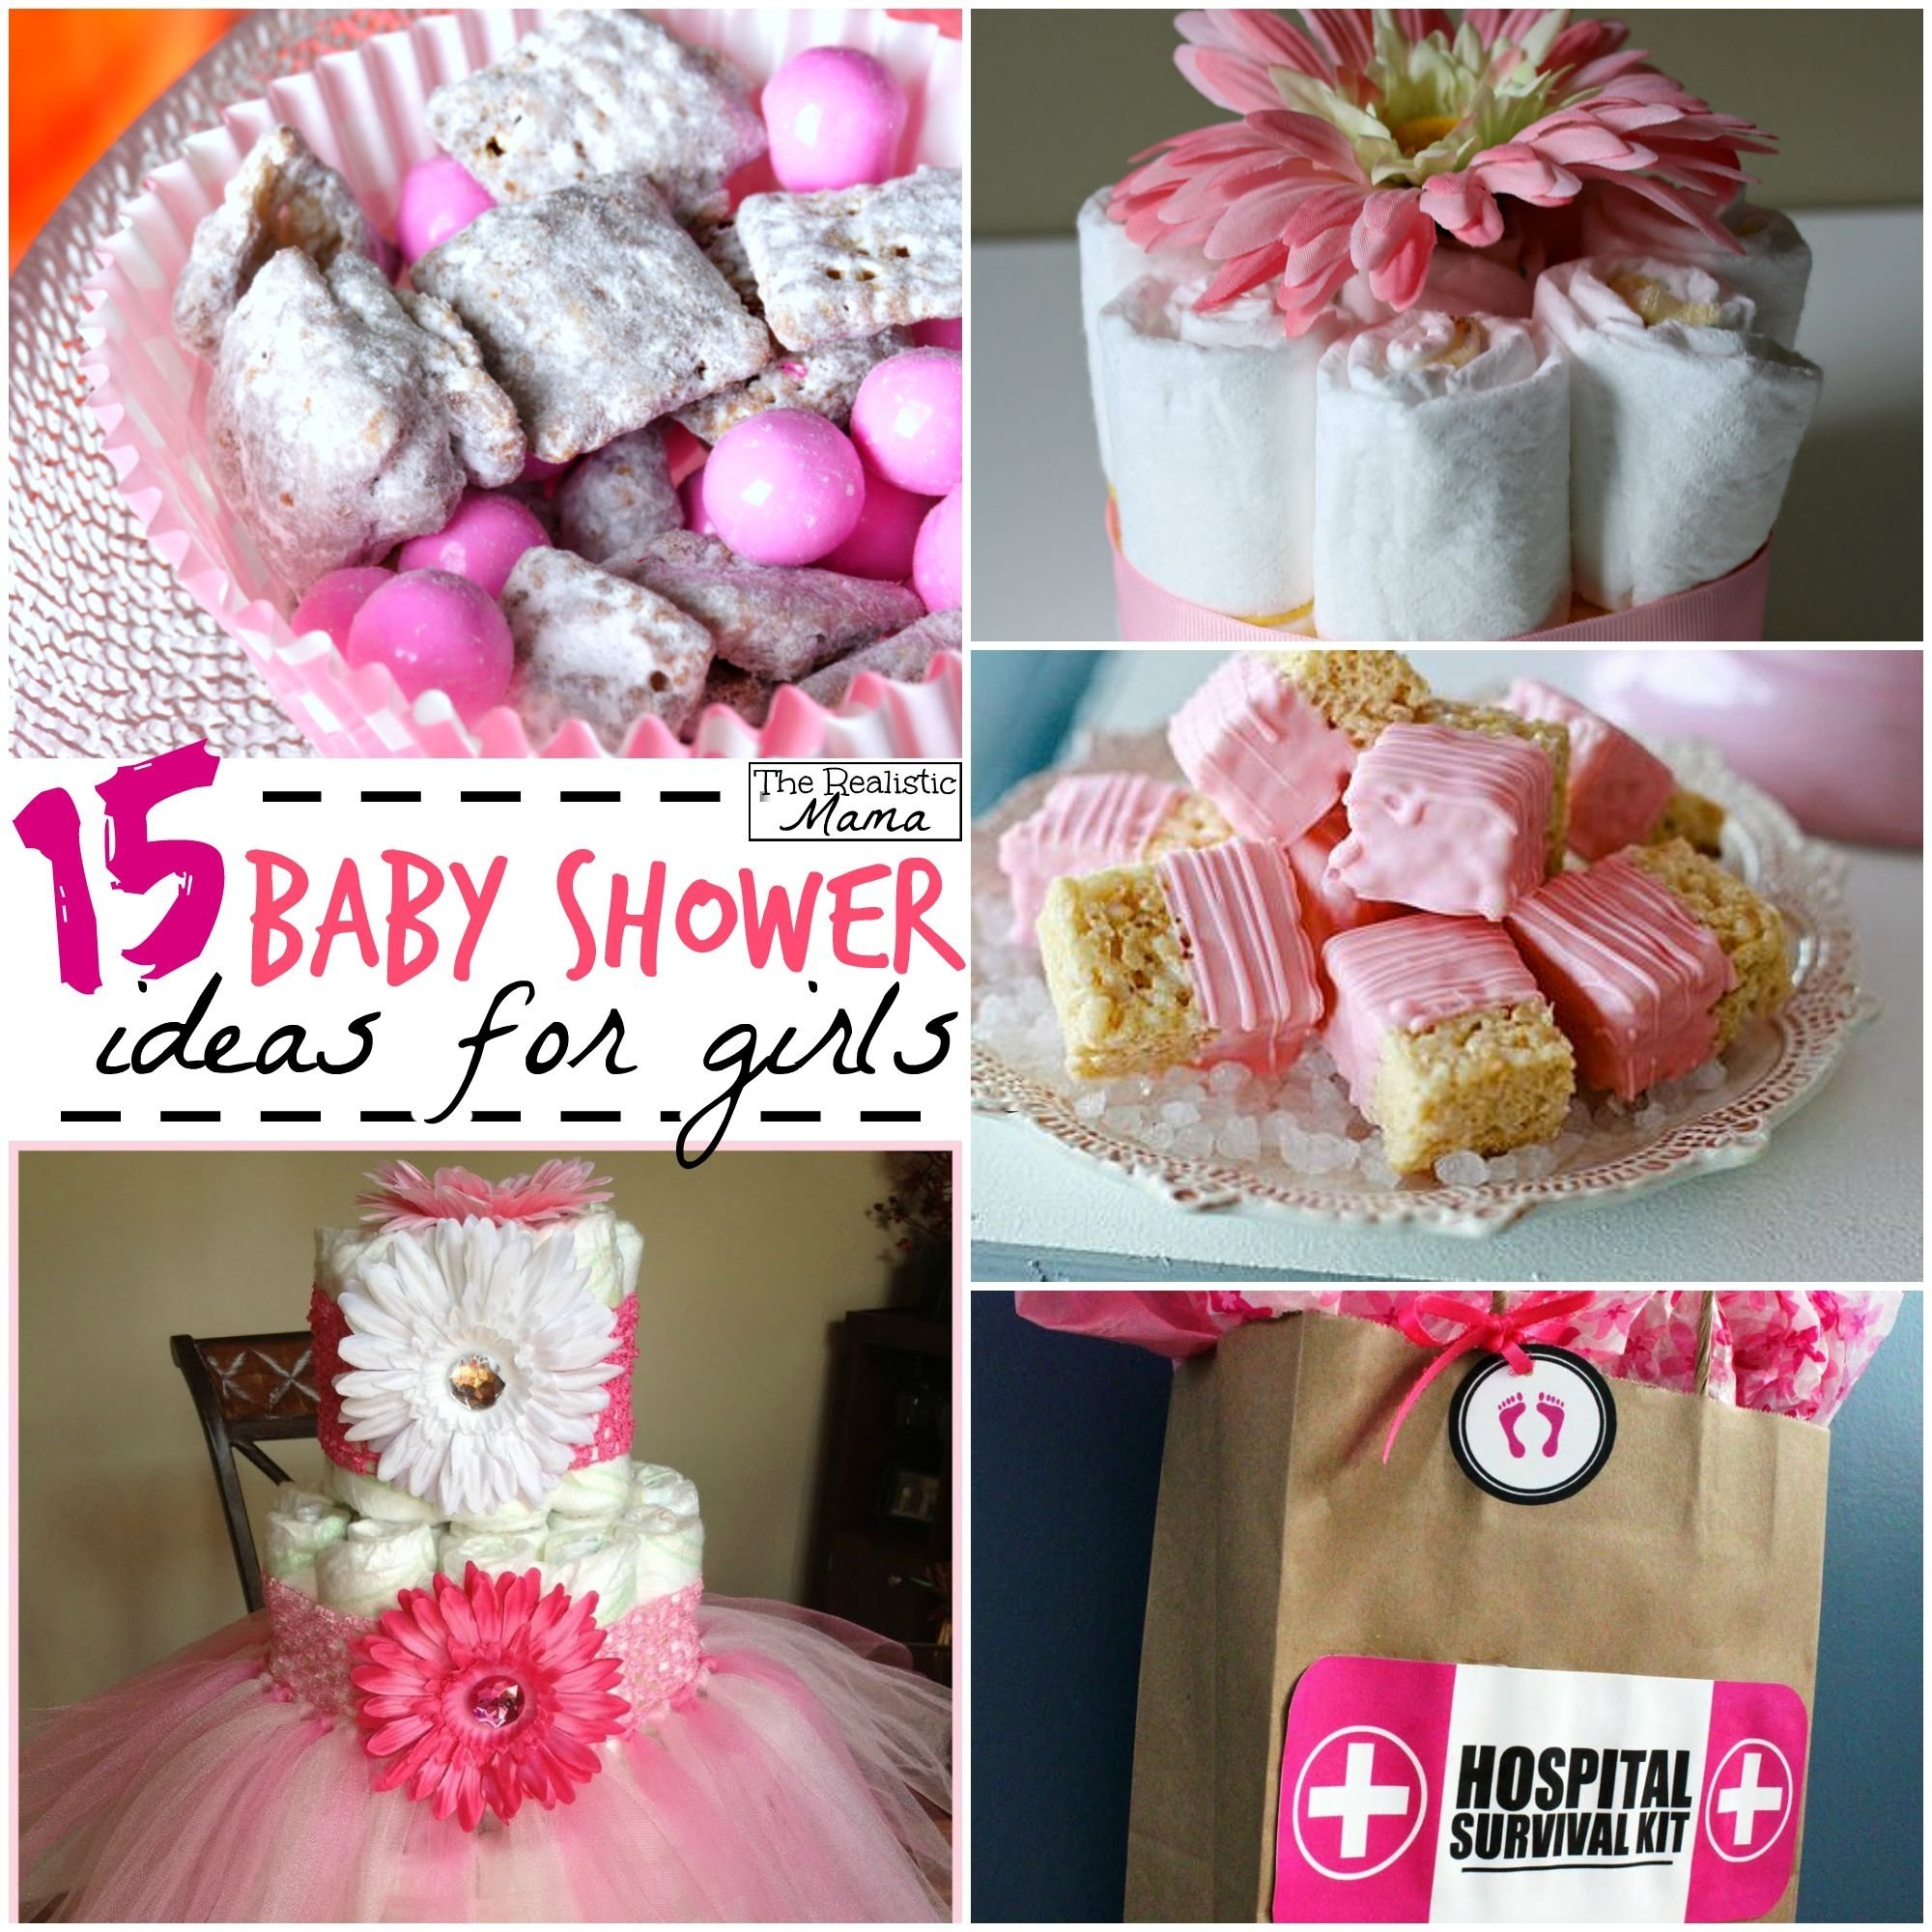 10 Pretty Ideas For A Baby Shower 15 baby shower ideas for girls the realistic mama